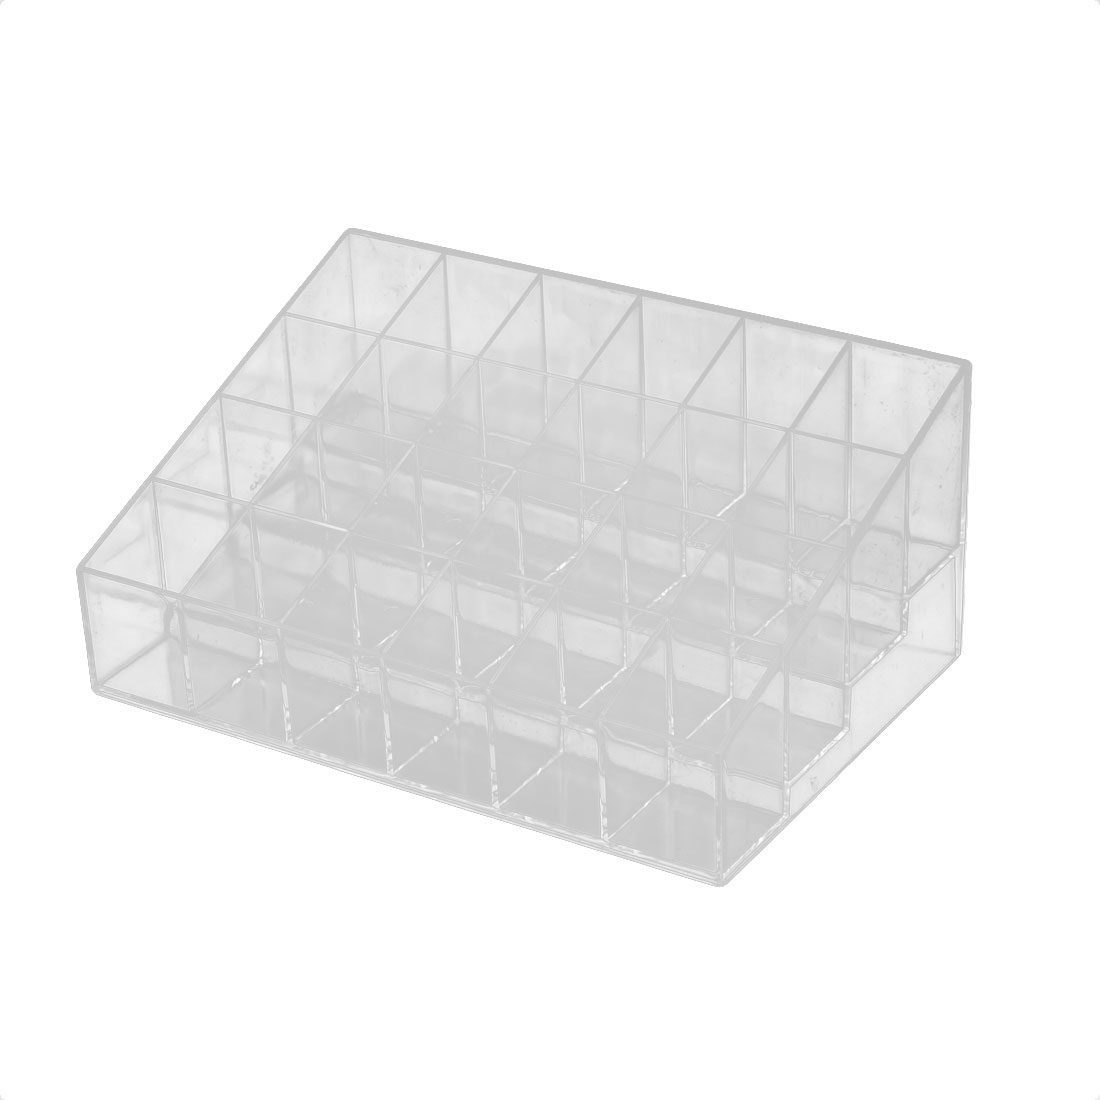 Clear Plastic Trapezoid 24 Grids Makeup Cosmetic Lipstick Organizer Display Stand Rack